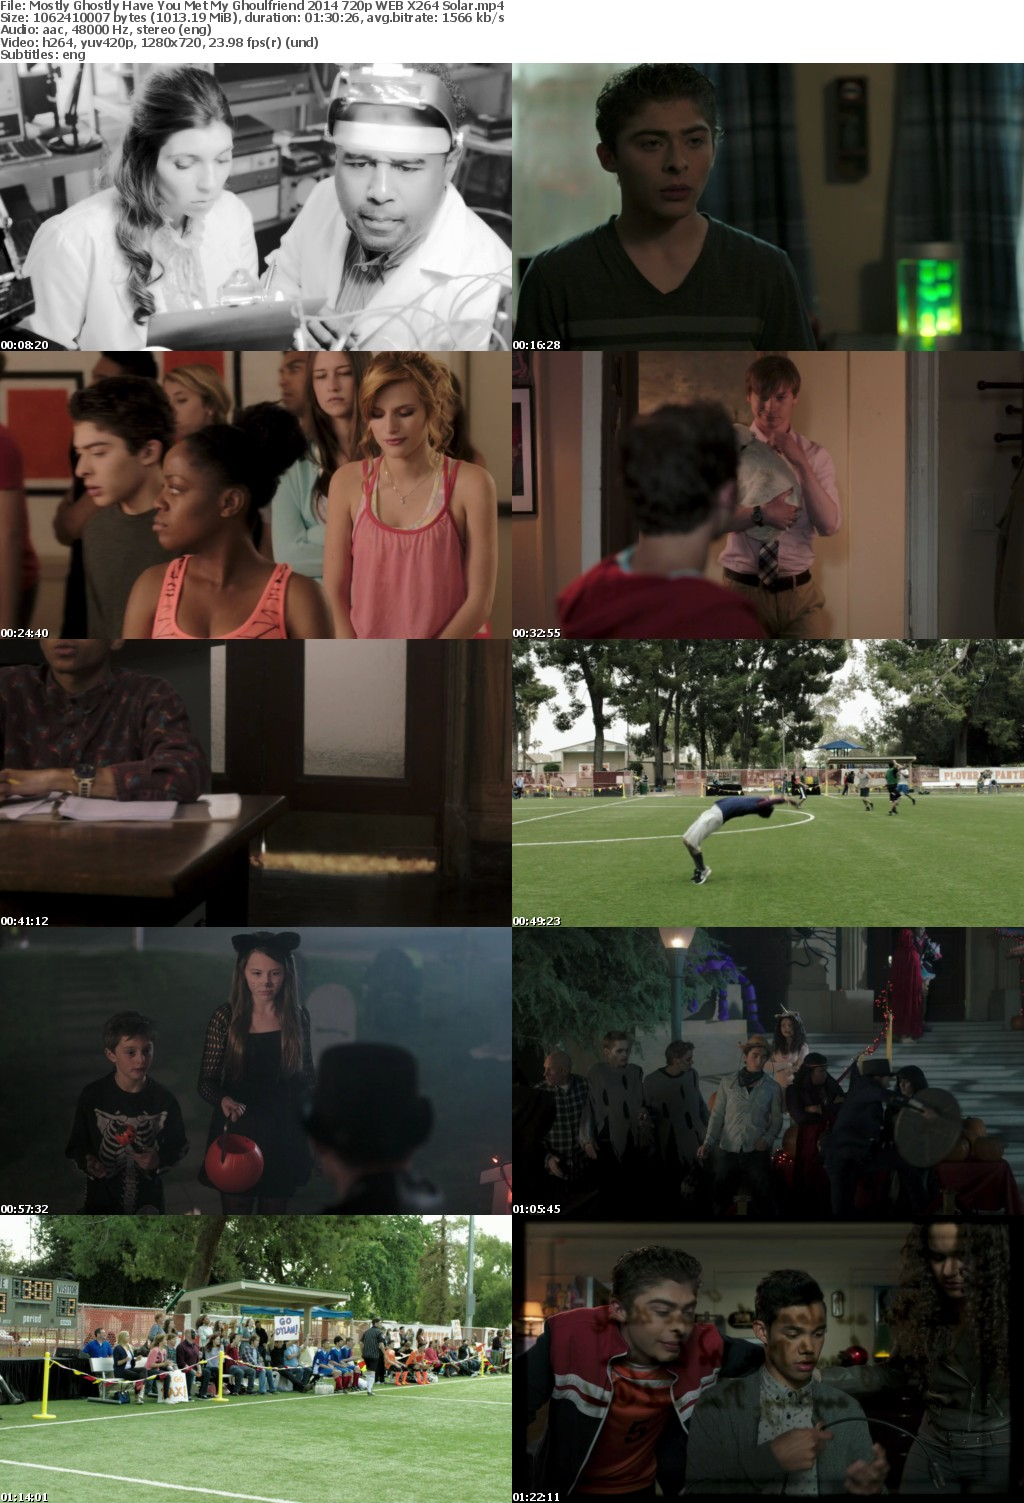 Mostly Ghostly Have You Met My Ghoulfriend 2014 720p WEB X264 Solar